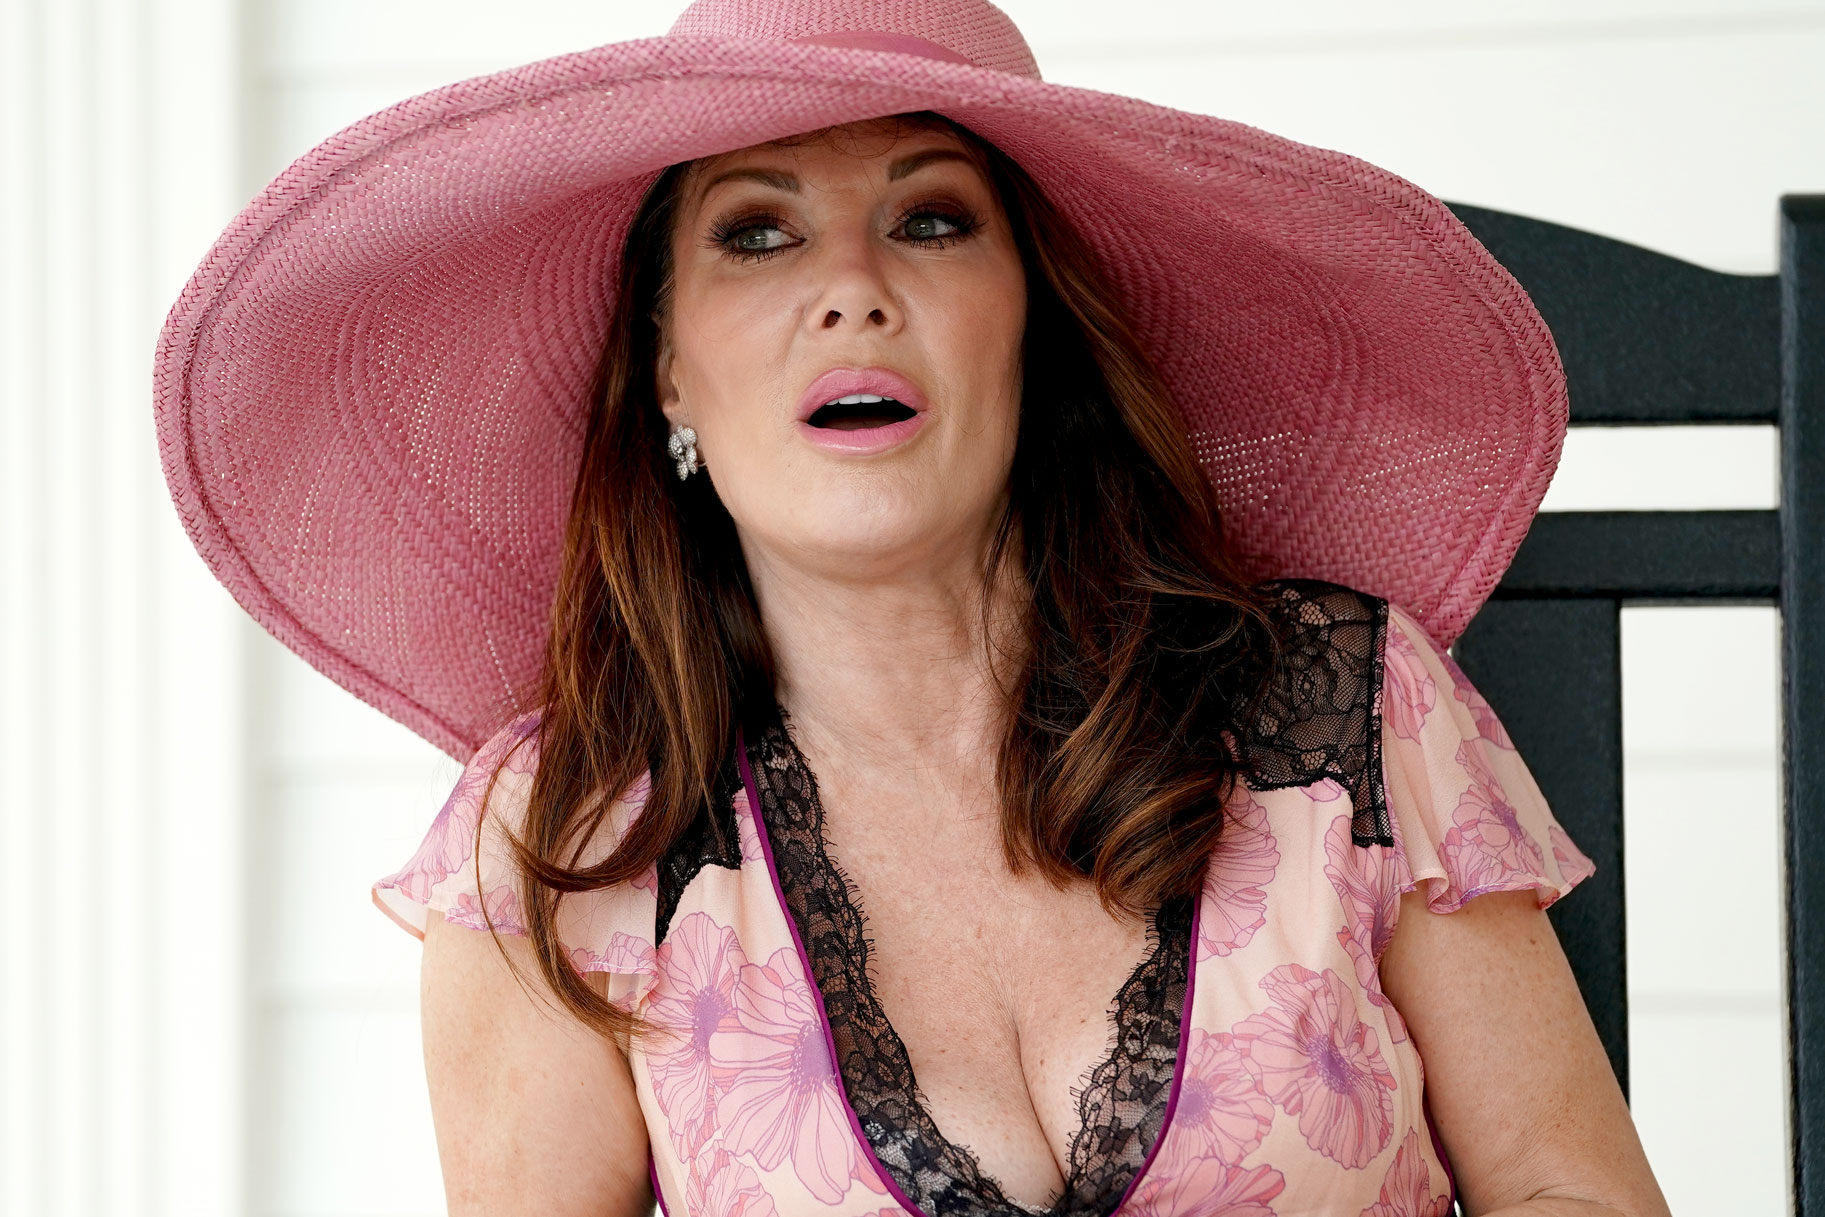 Lisa Vanderpump RHOBH Update